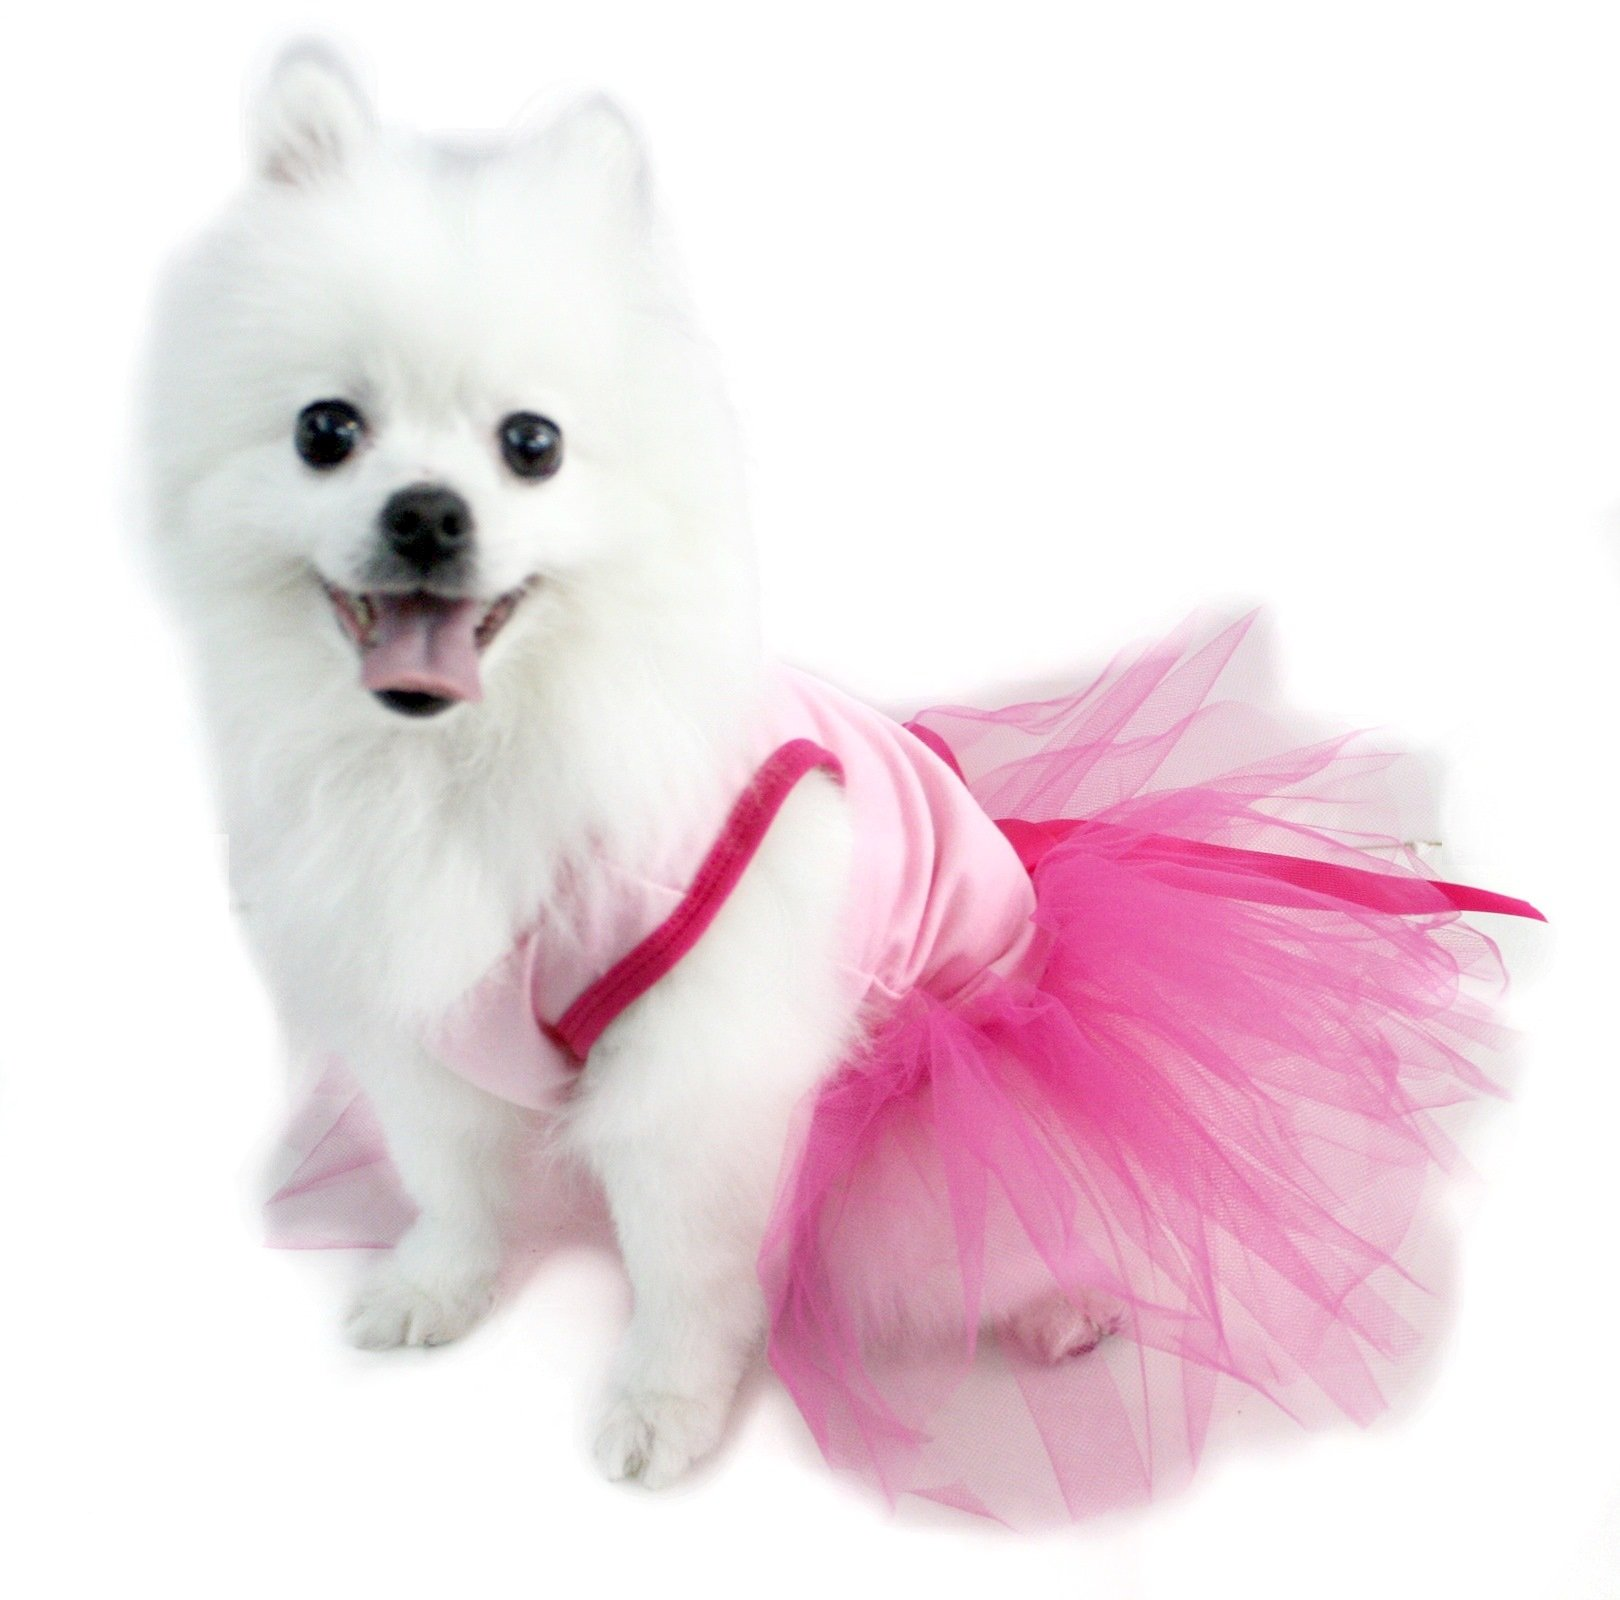 Puppy Clothes Dog Dress Light Pink Cotton Top Hot Pink Tutu Animal Wear (X-Large)